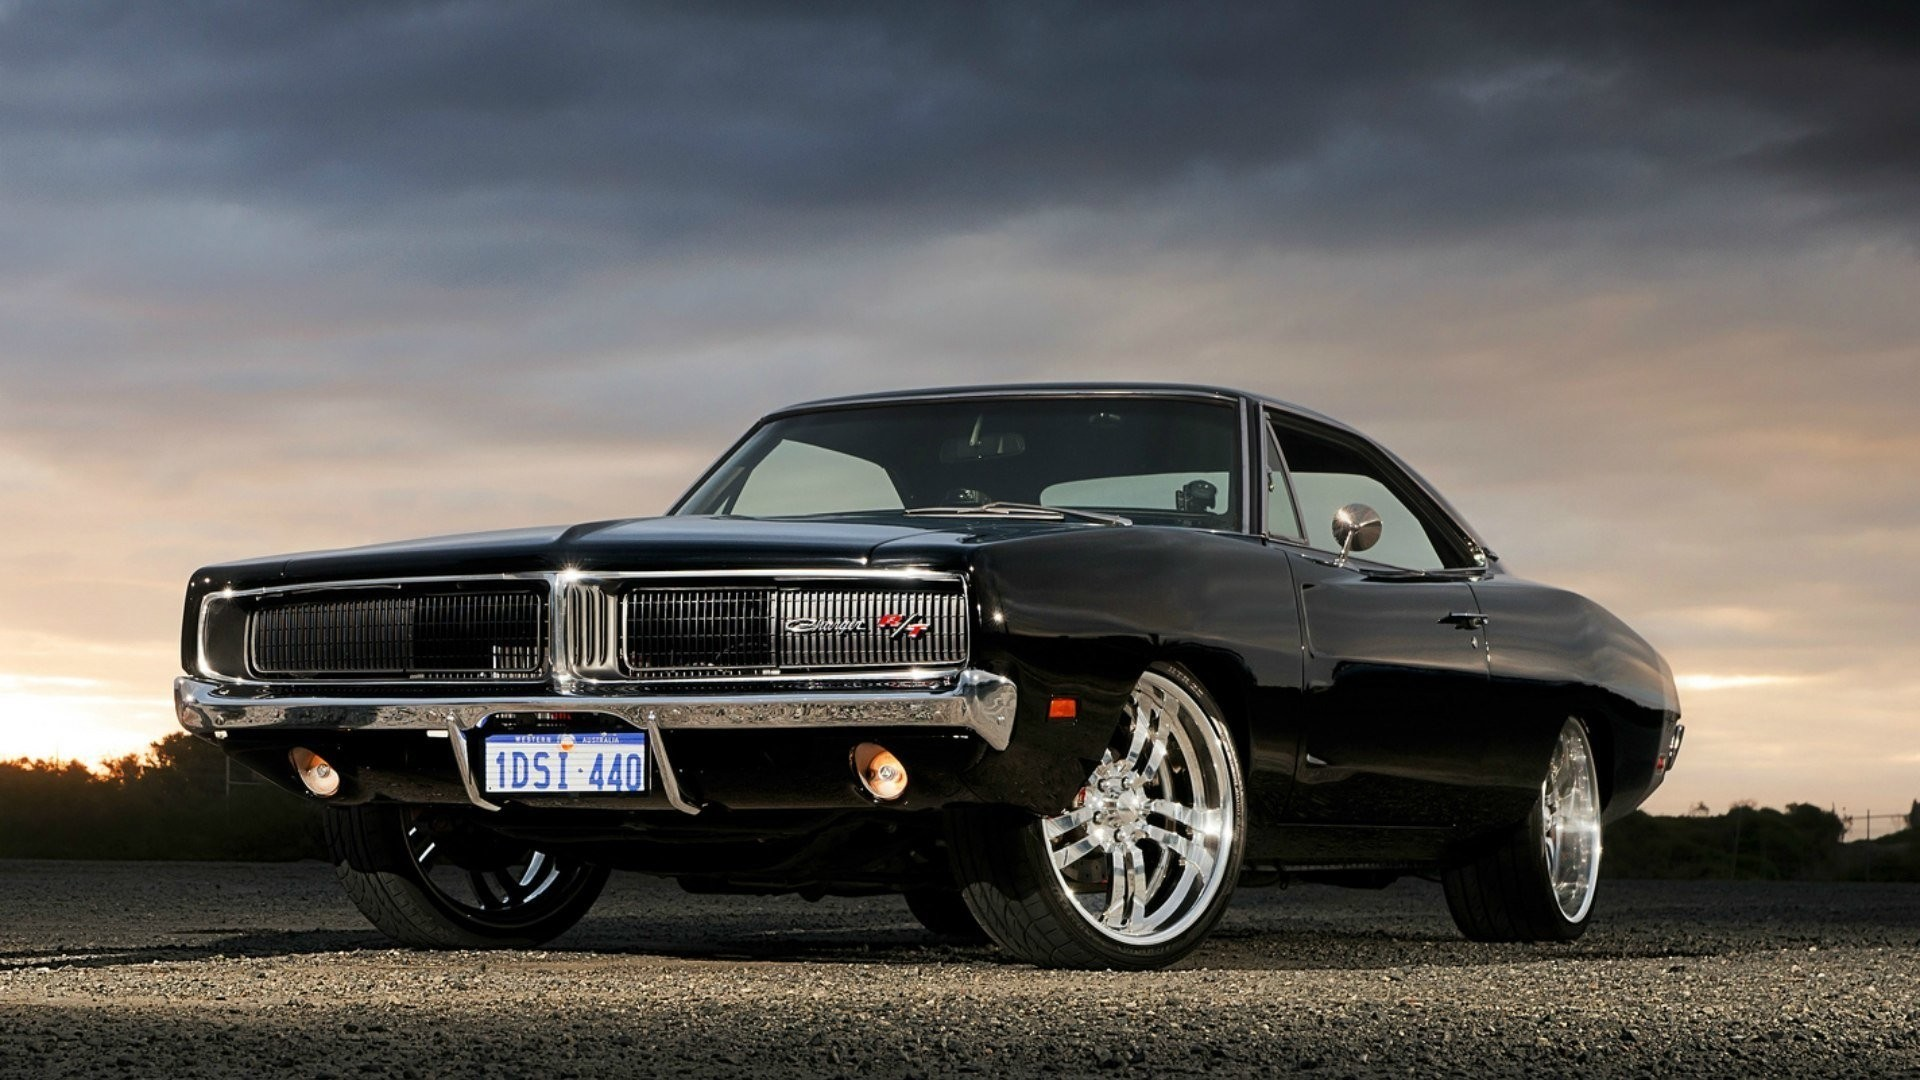 Dodge Charger Wallpaper Desktop